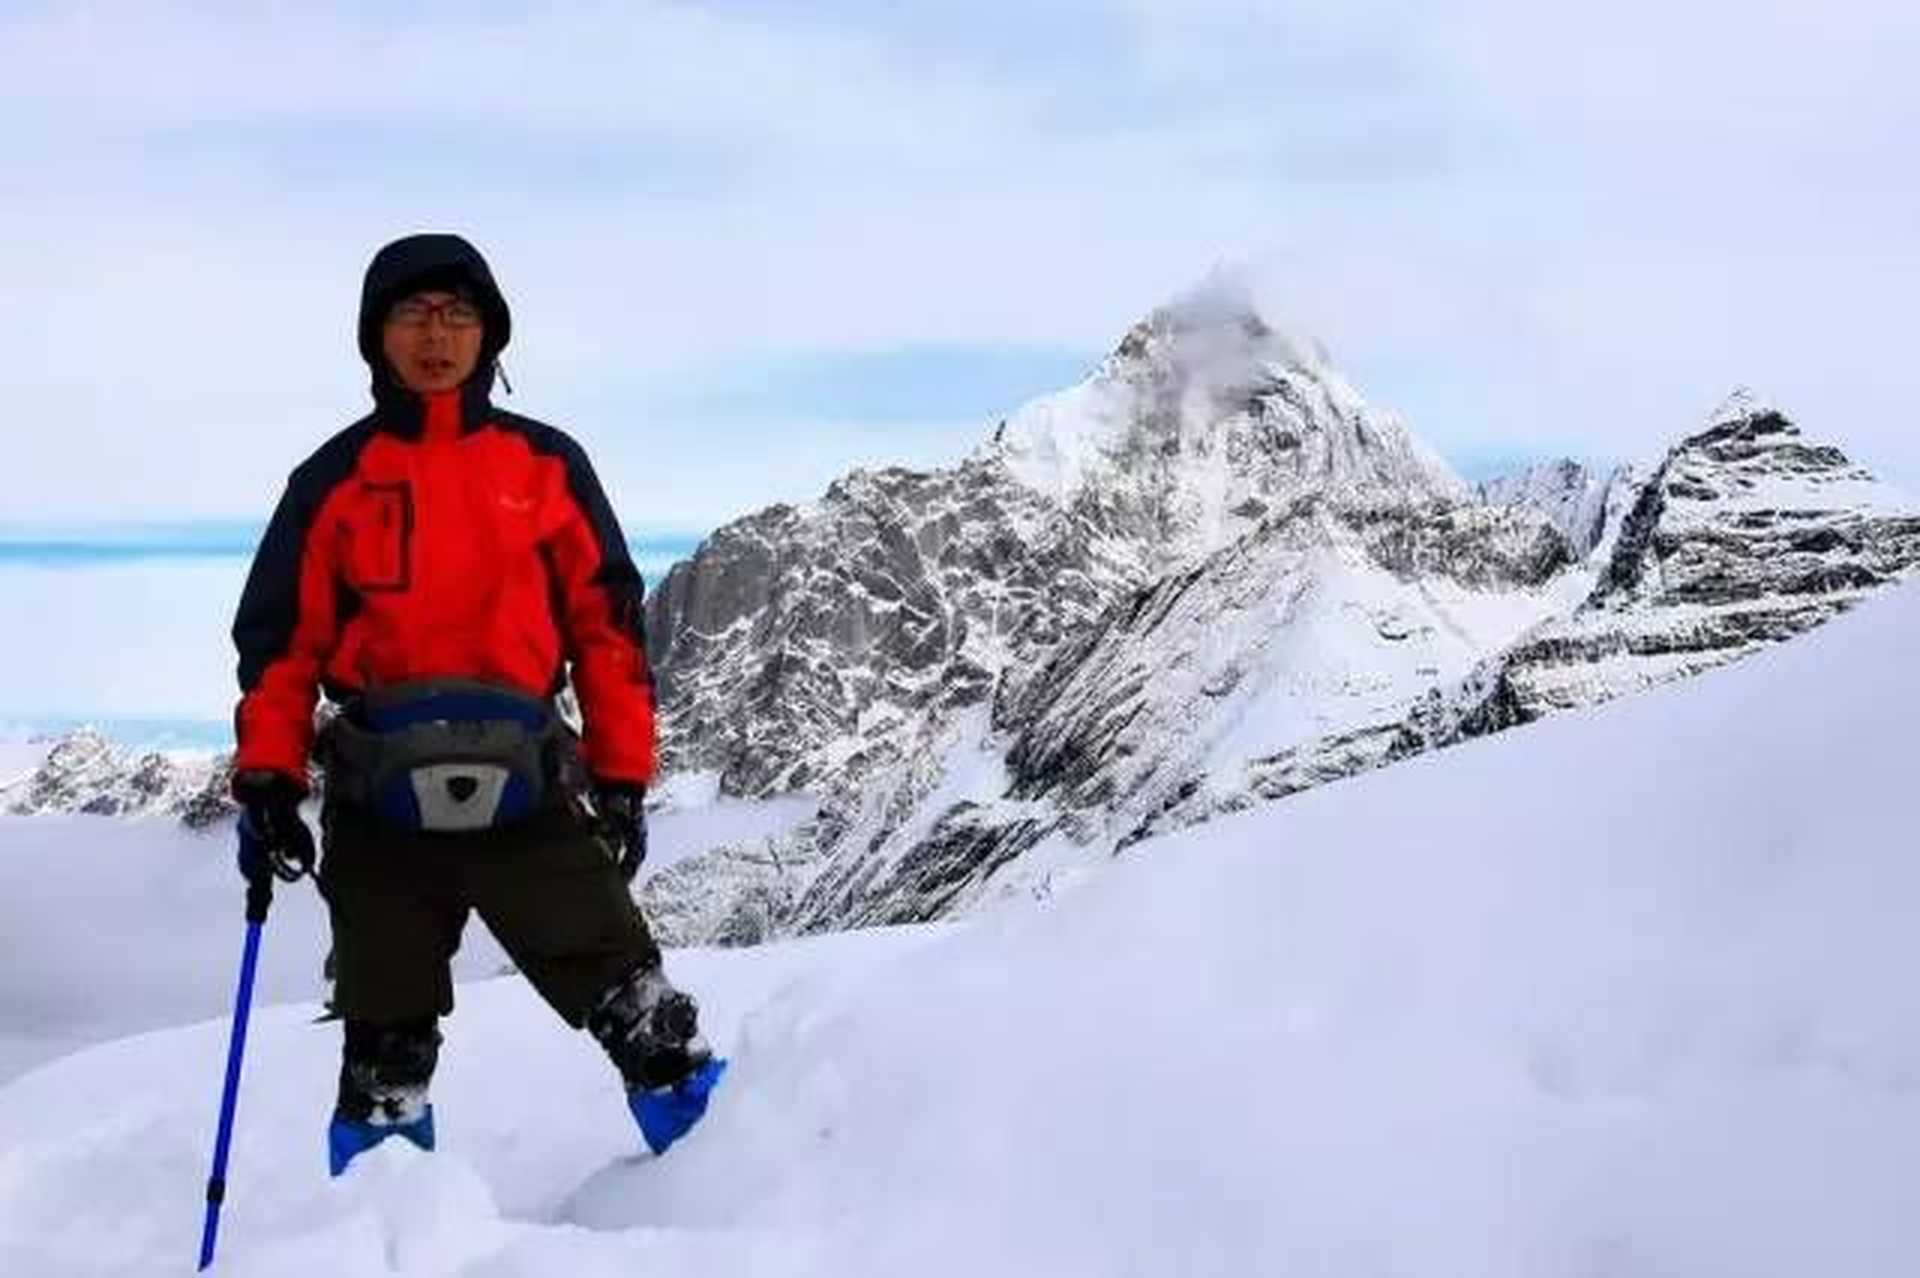 Qiu cold: snow-capped mountains and sky photography enthusiasts    Star Catcher